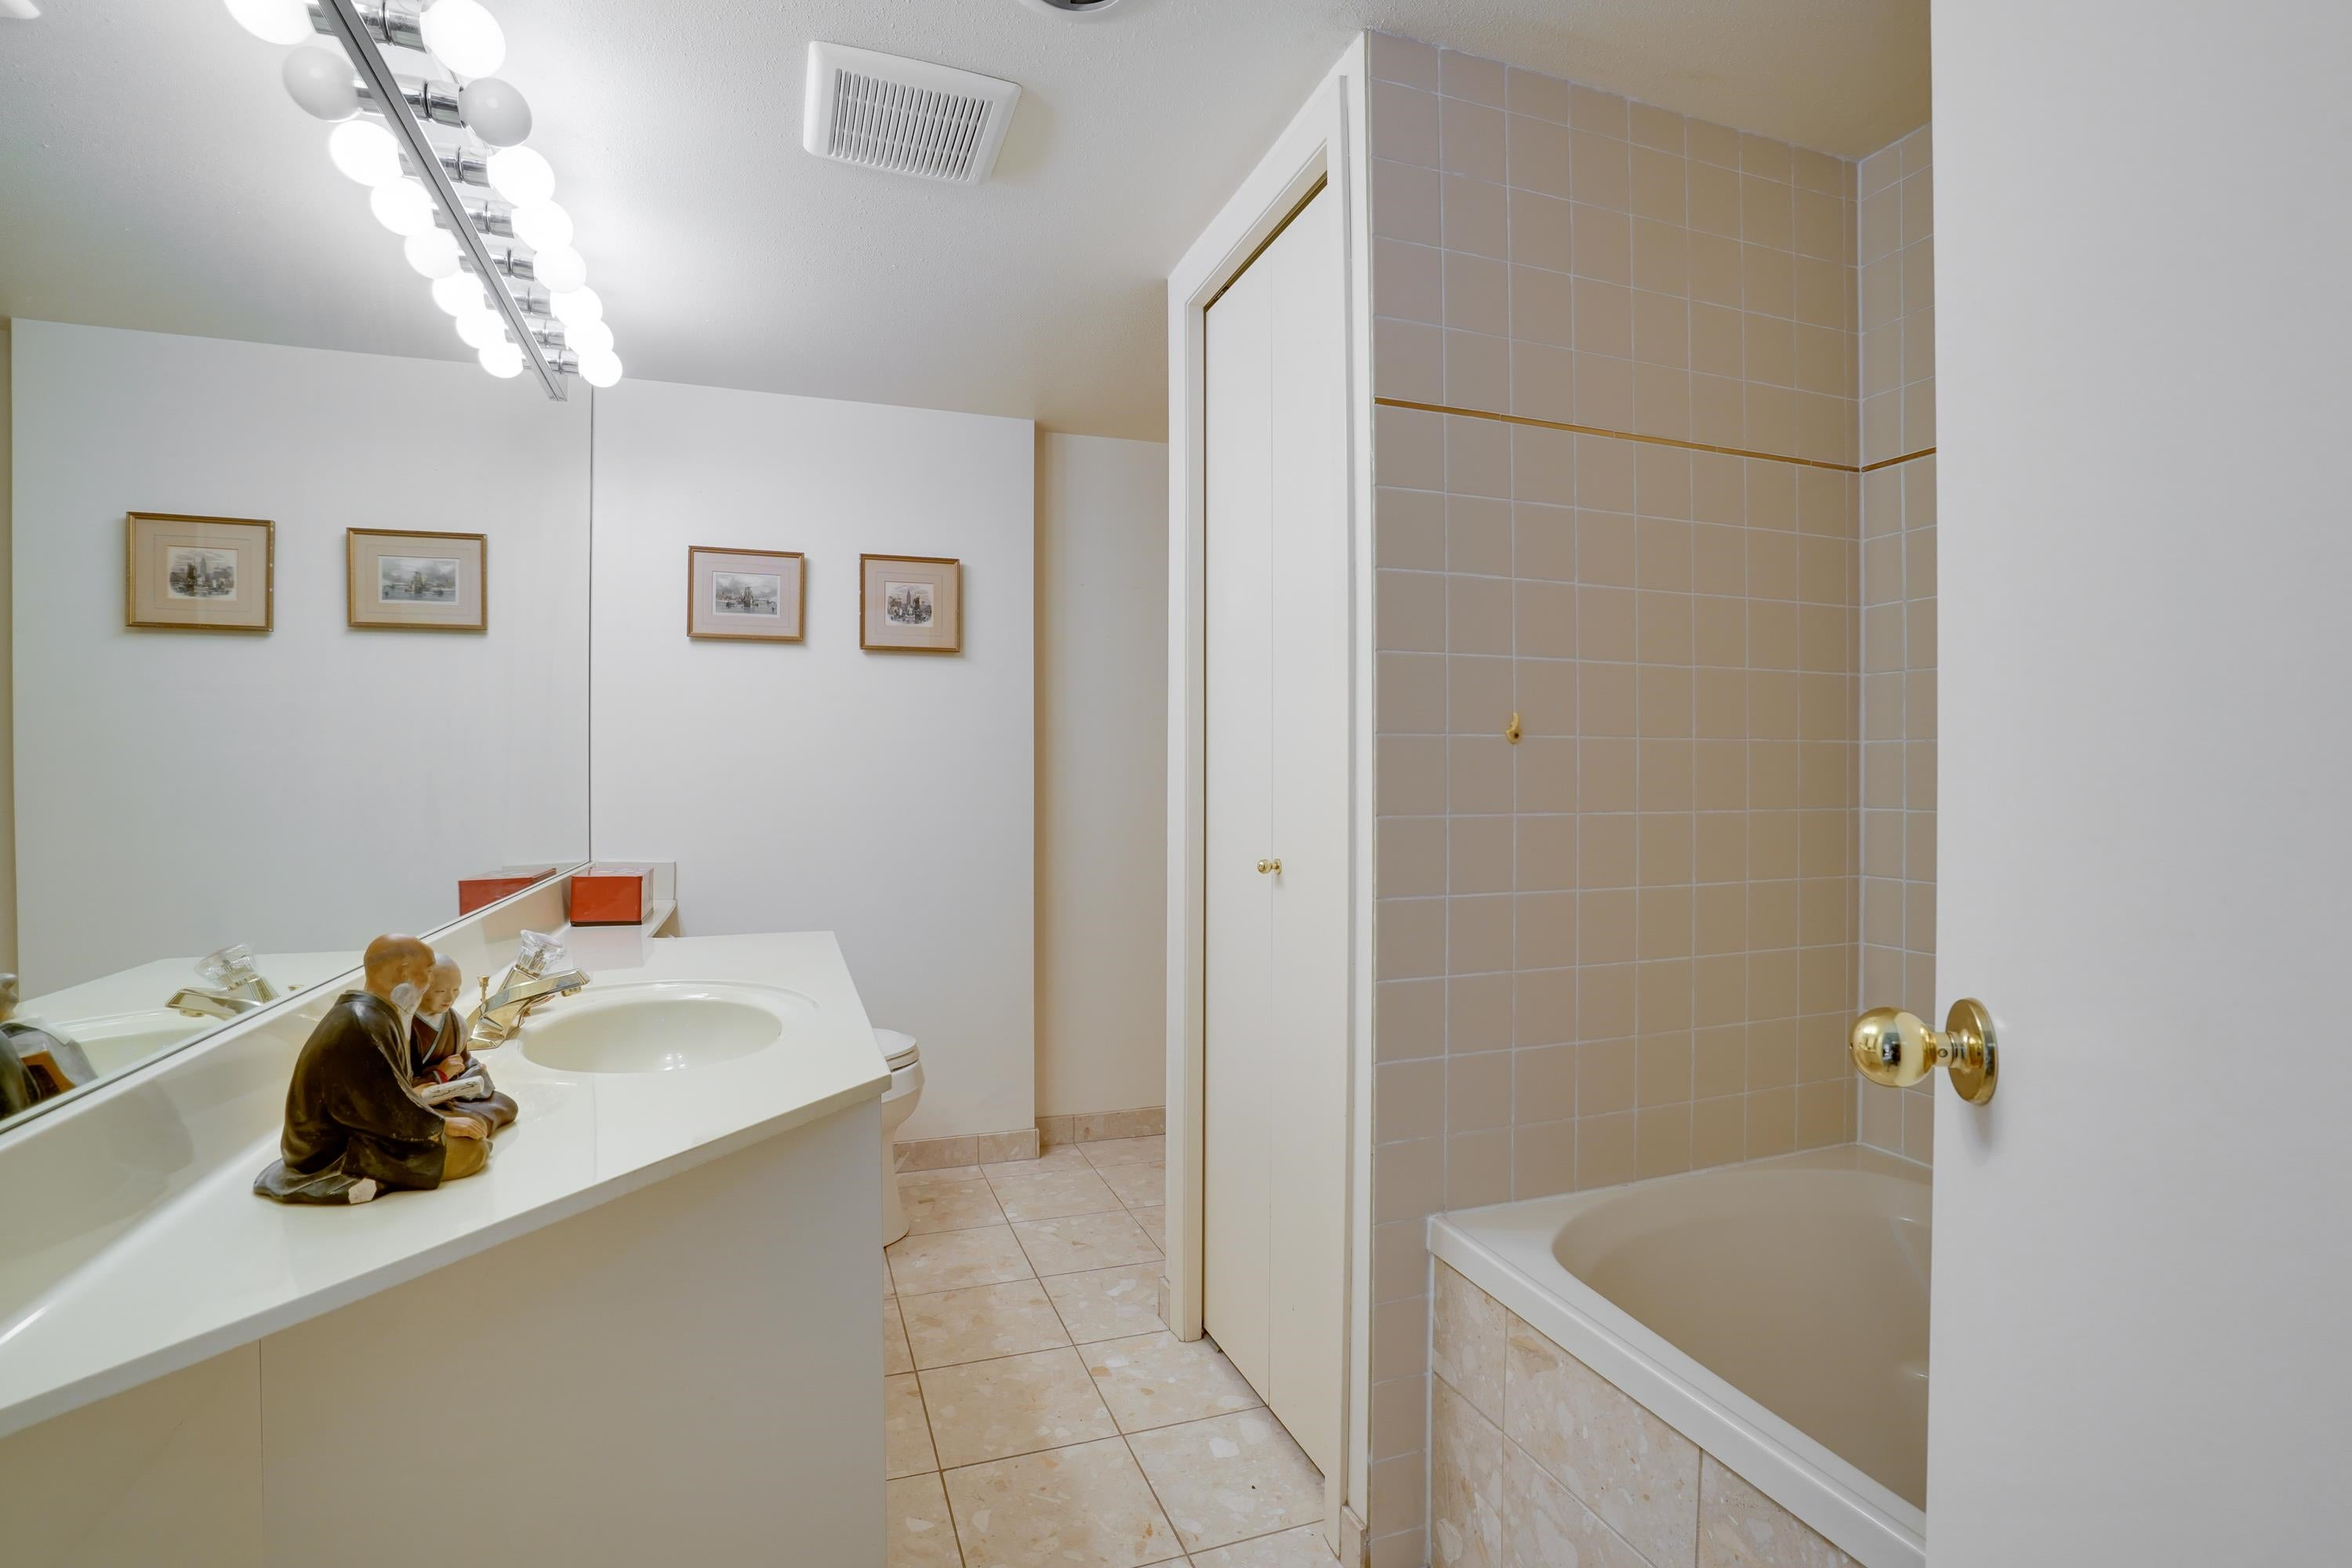 405 168 CHADWICK COURT - Lower Lonsdale Apartment/Condo for sale, 3 Bedrooms (R2619951) - #11